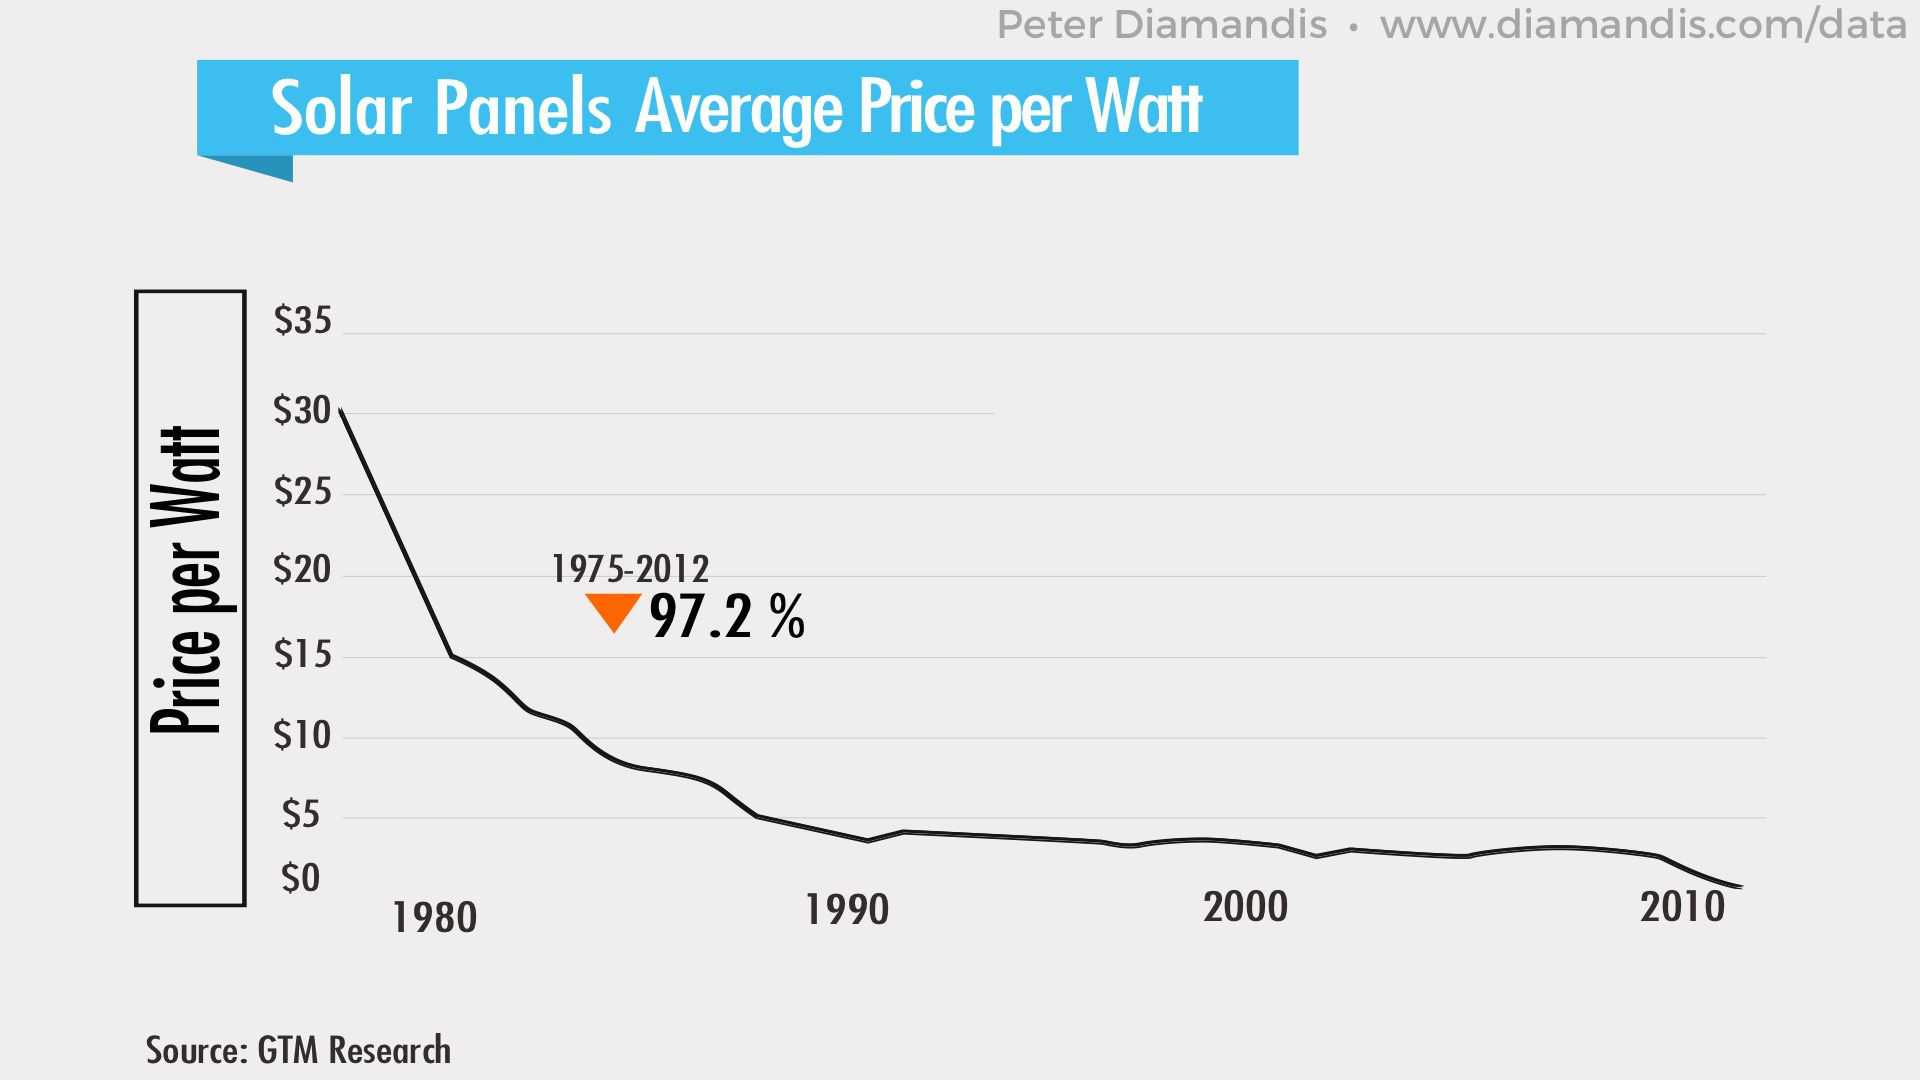 Solar-Panels-Average-Price-per-Watt